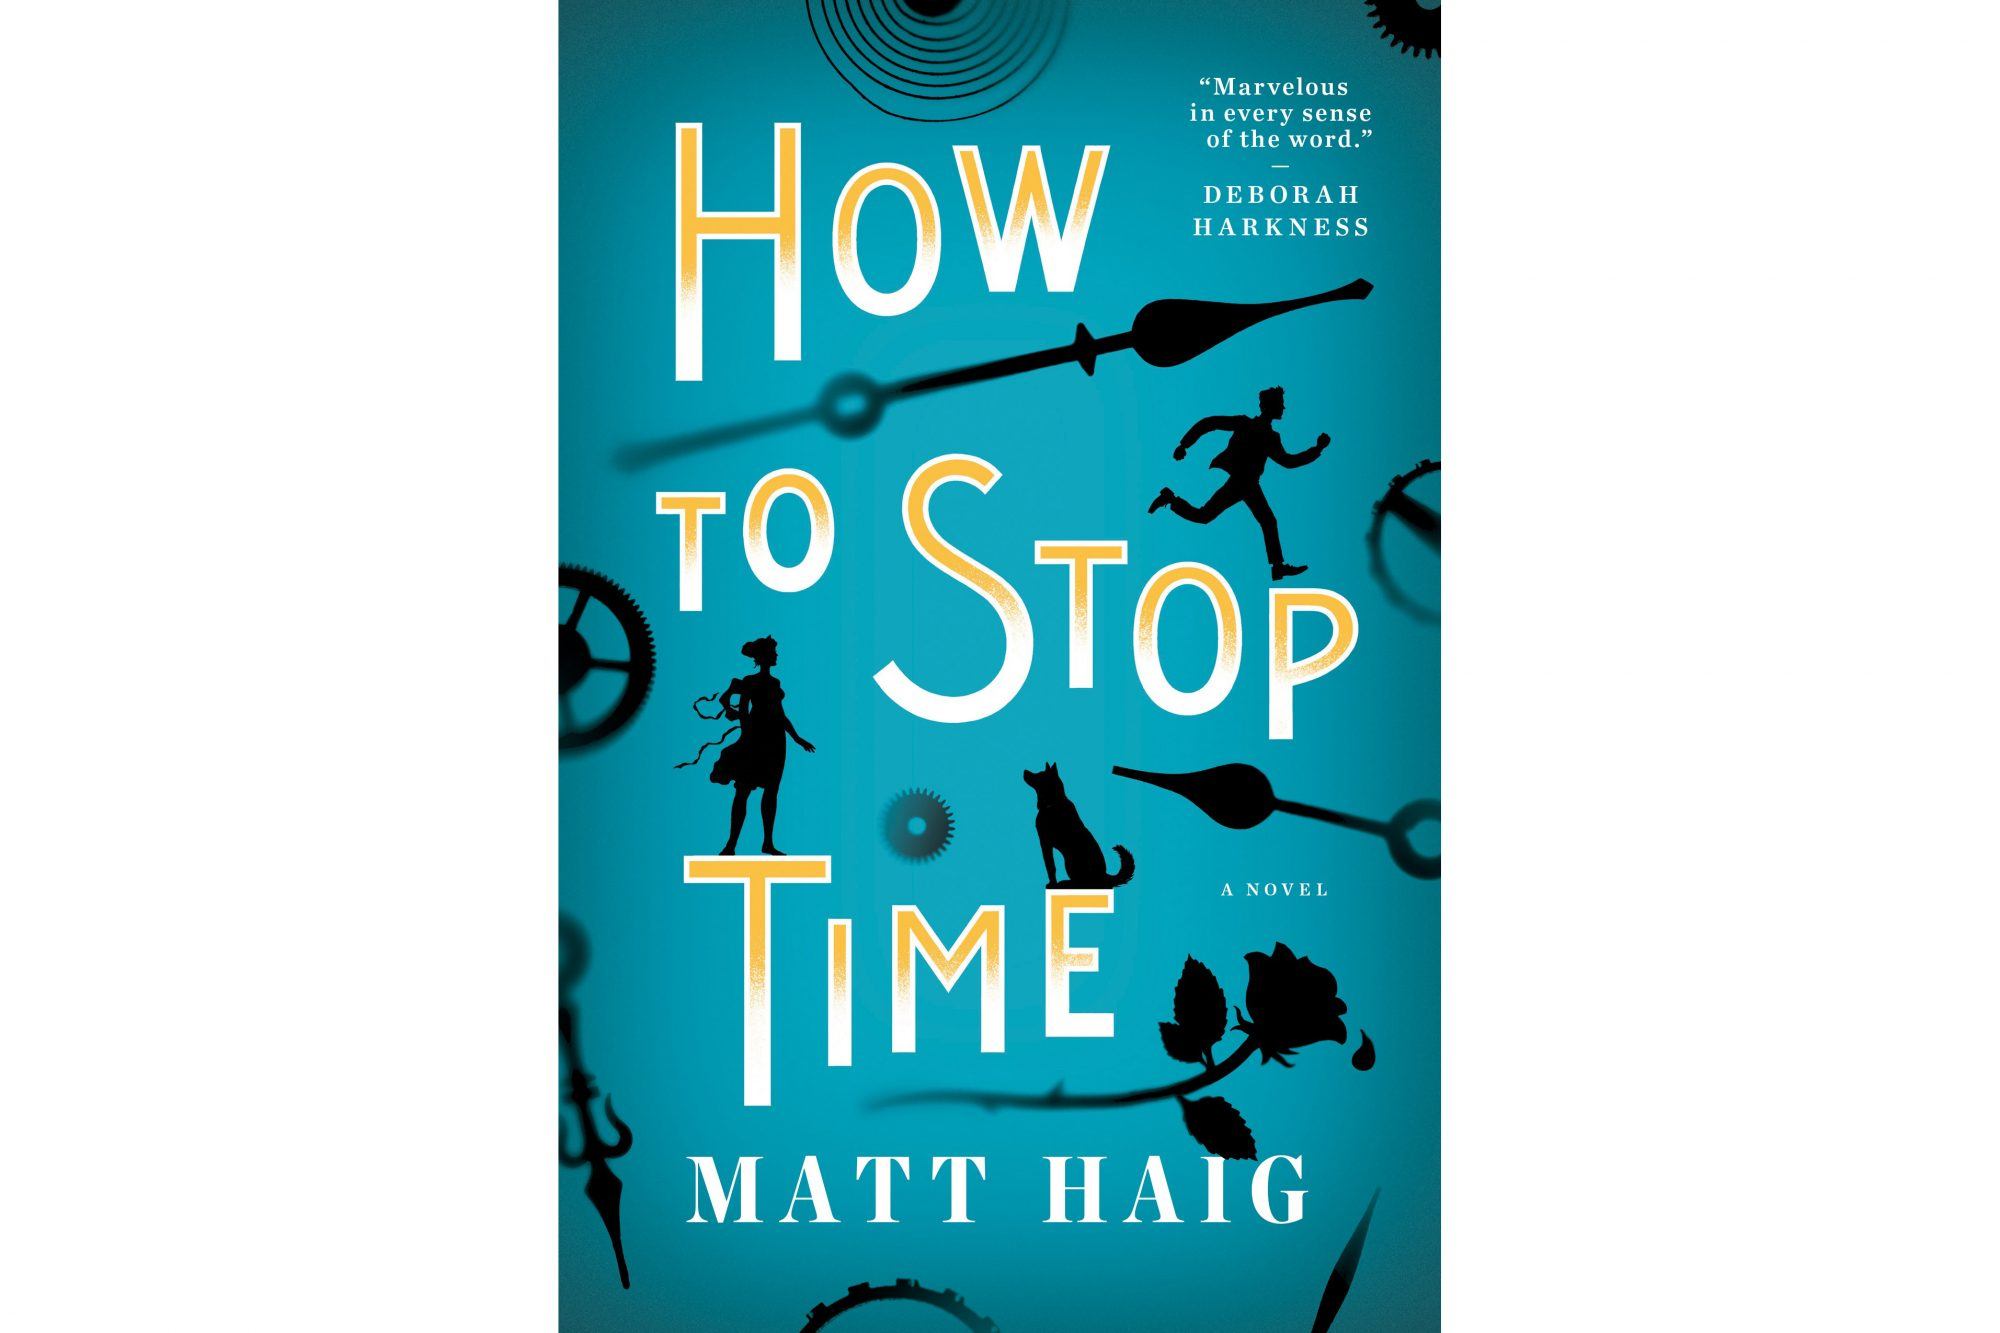 How to Stop Time, by Matt Haig